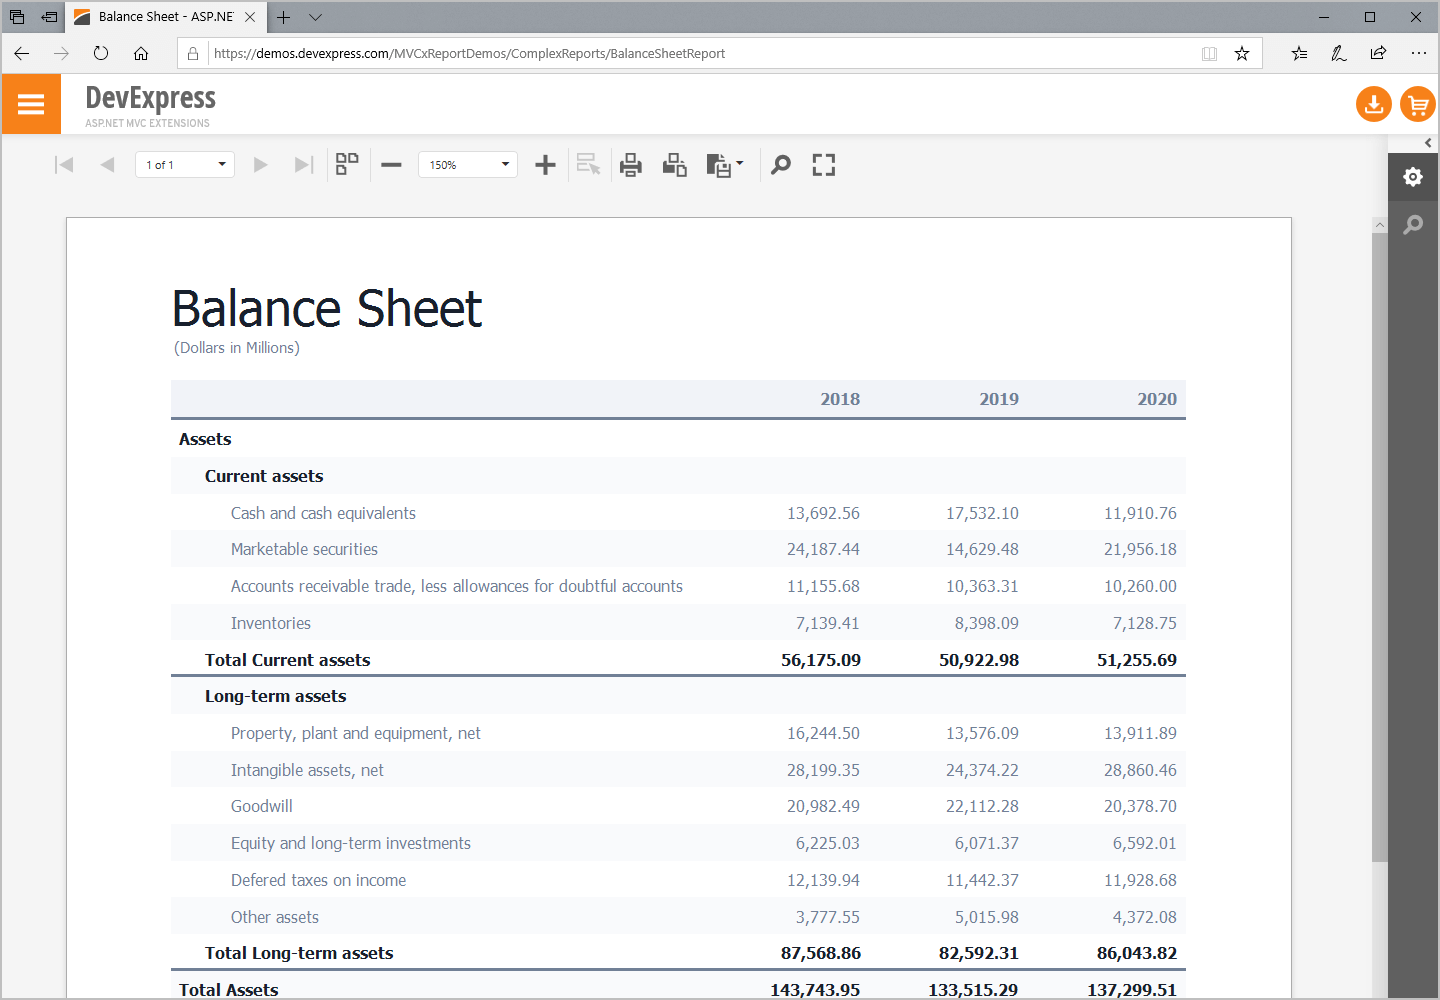 Balance Sheet - ASP.NET Reporting, DevExpress